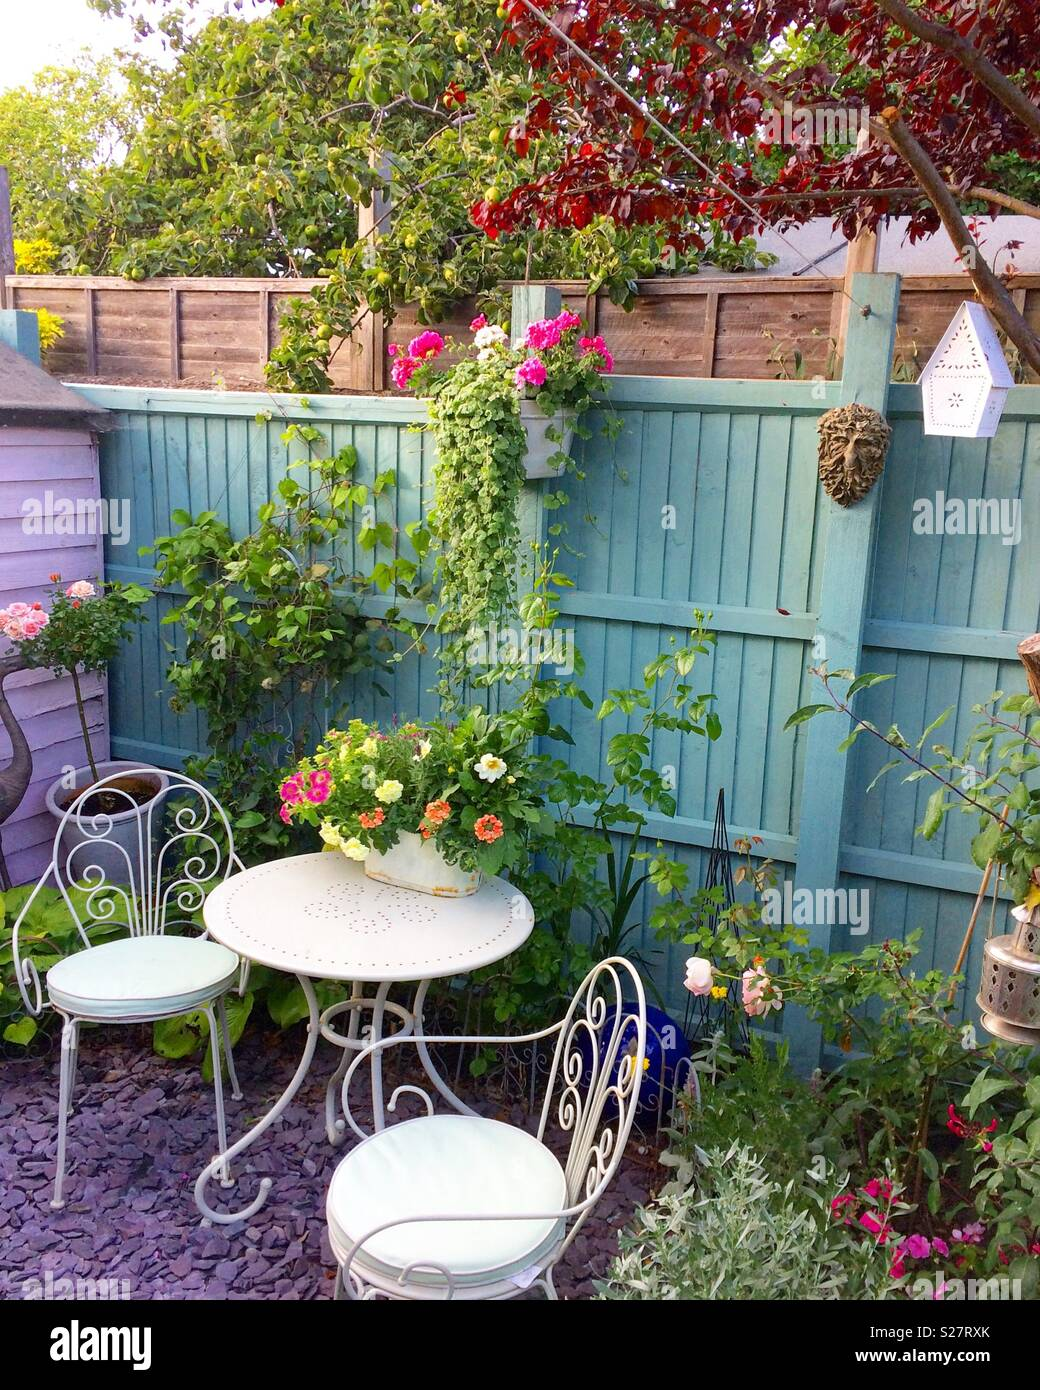 Very Small Gardens High Resolution Stock Photography And Images Alamy